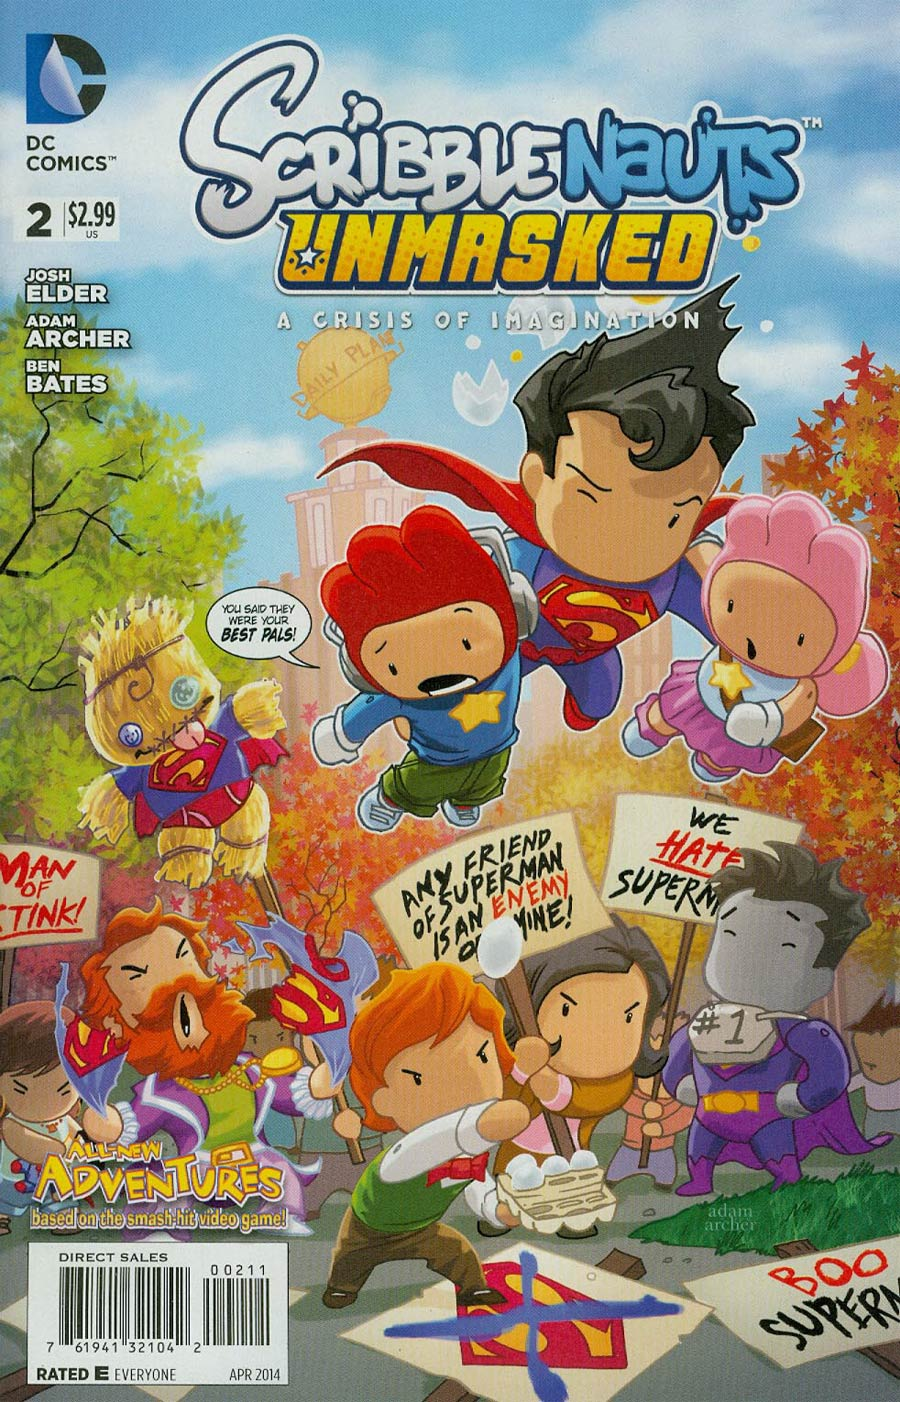 Scribblenauts Unmasked Crisis Of Imagination #2